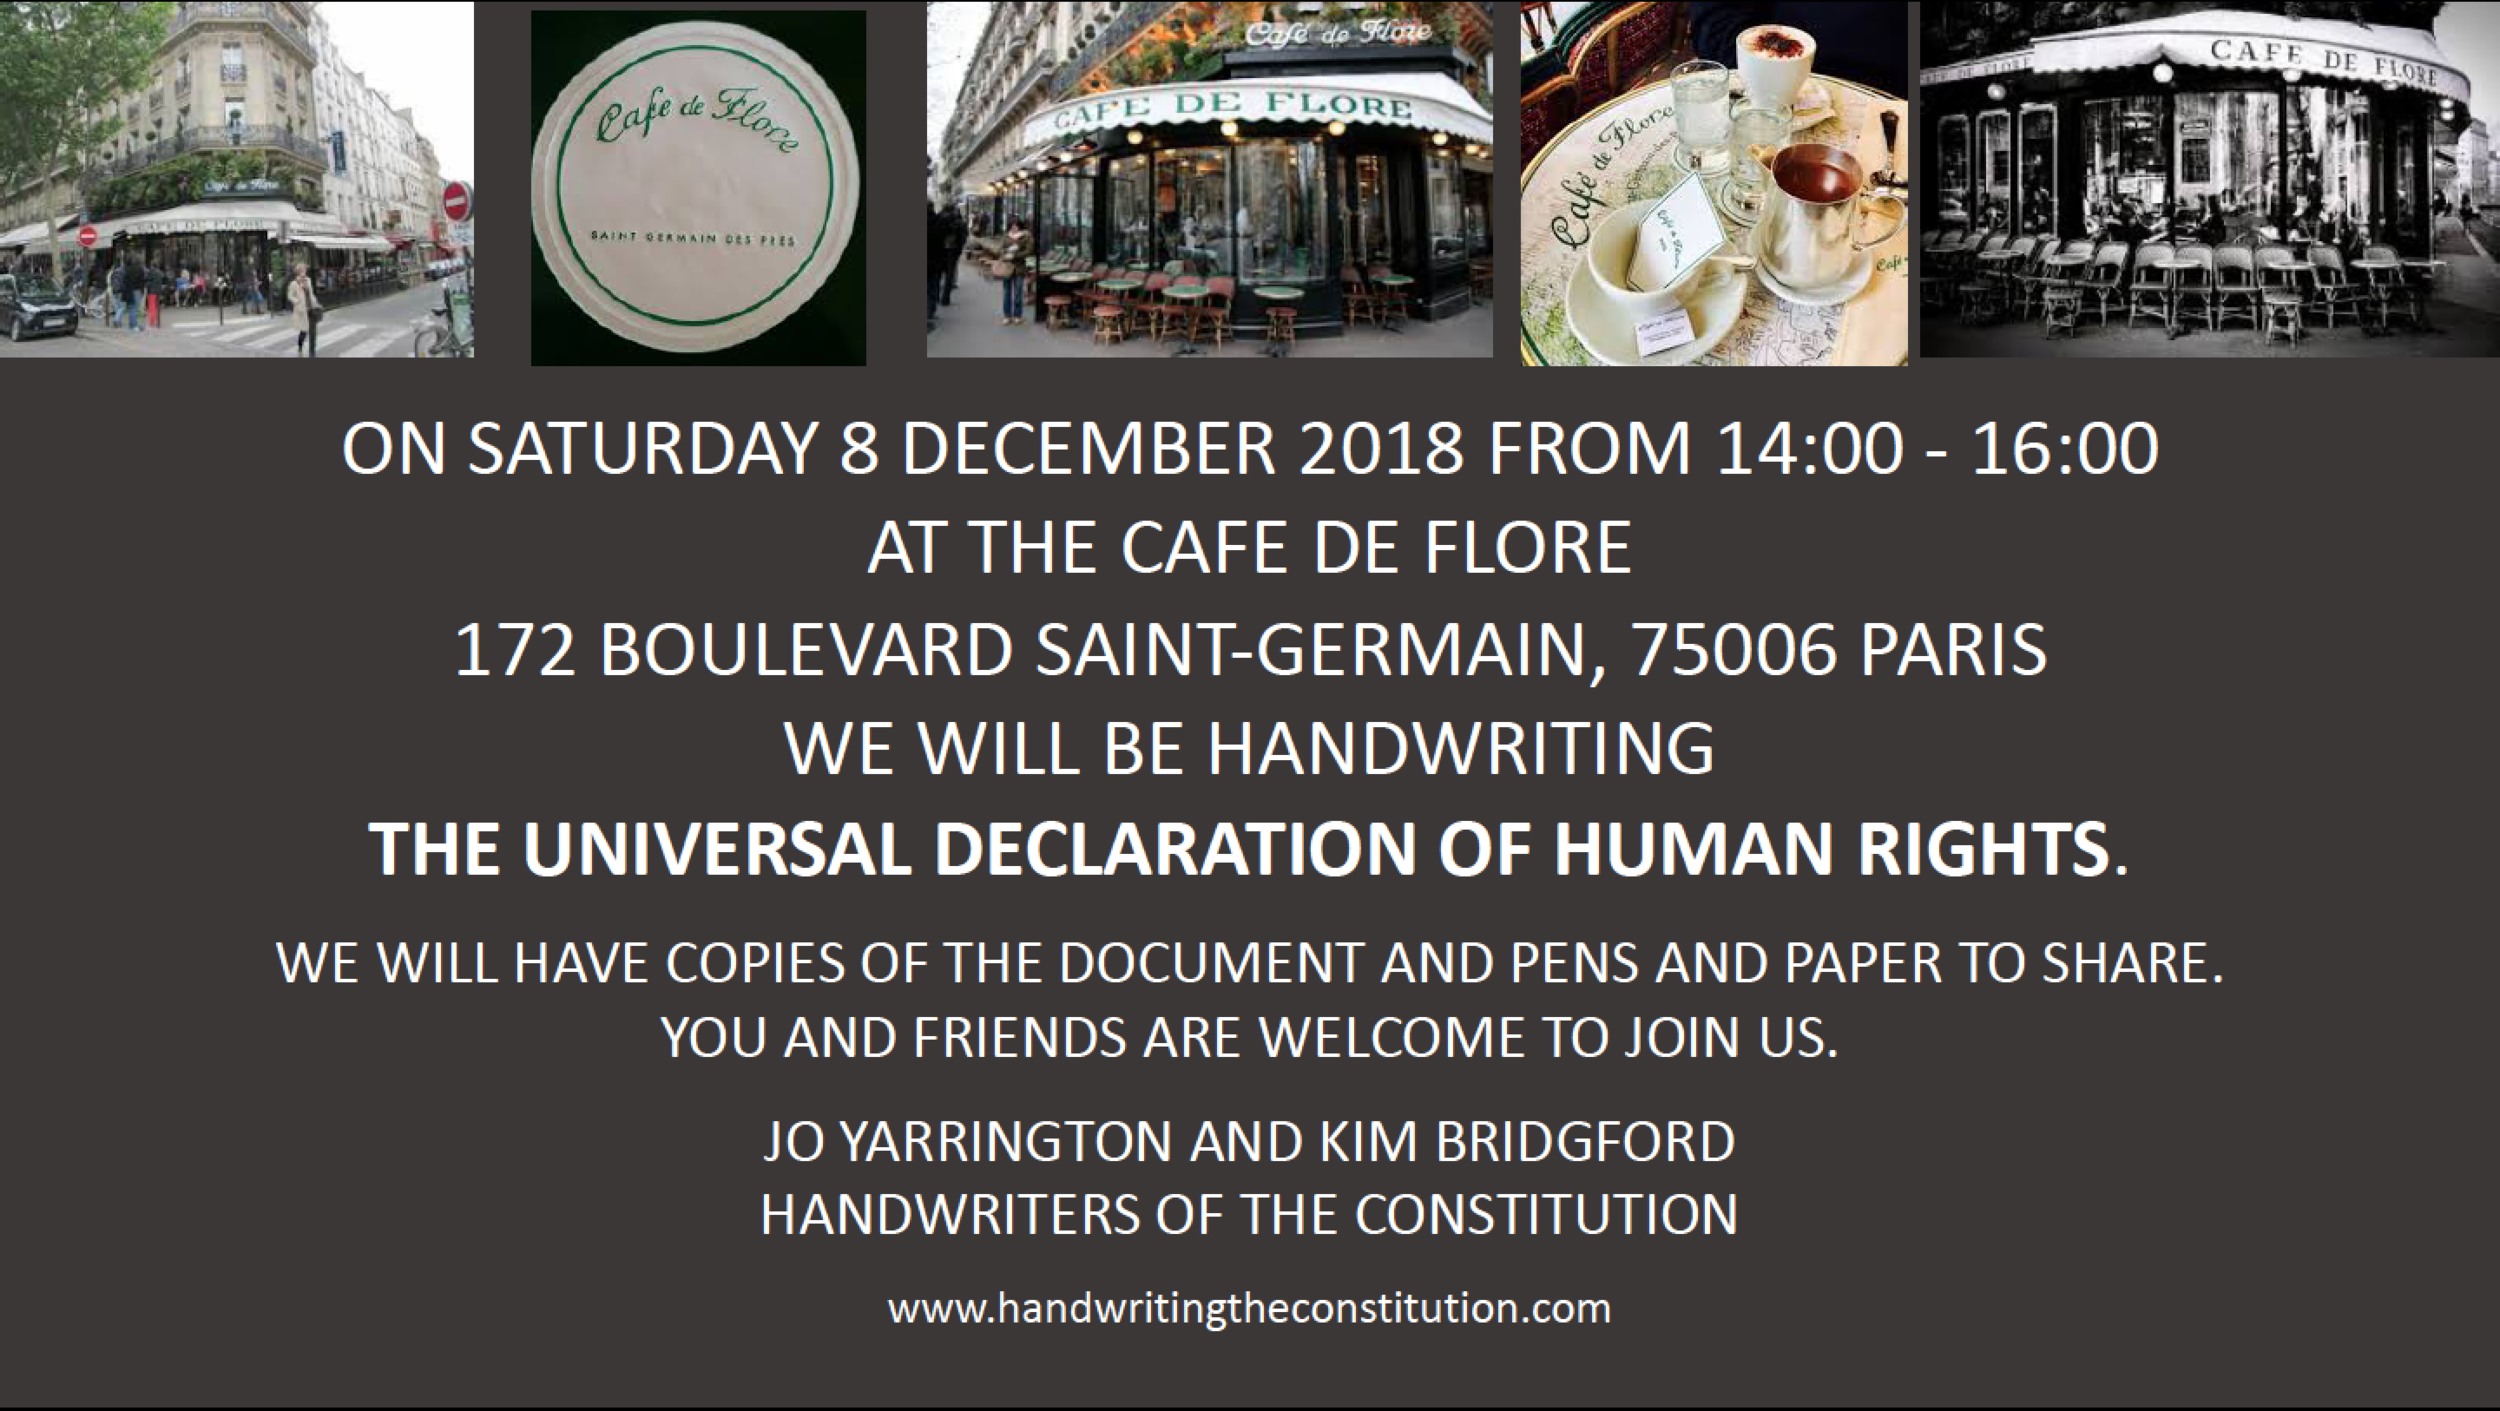 8 december 2018paris, france - session 83collaborators jo yarringtonand kim bridgford